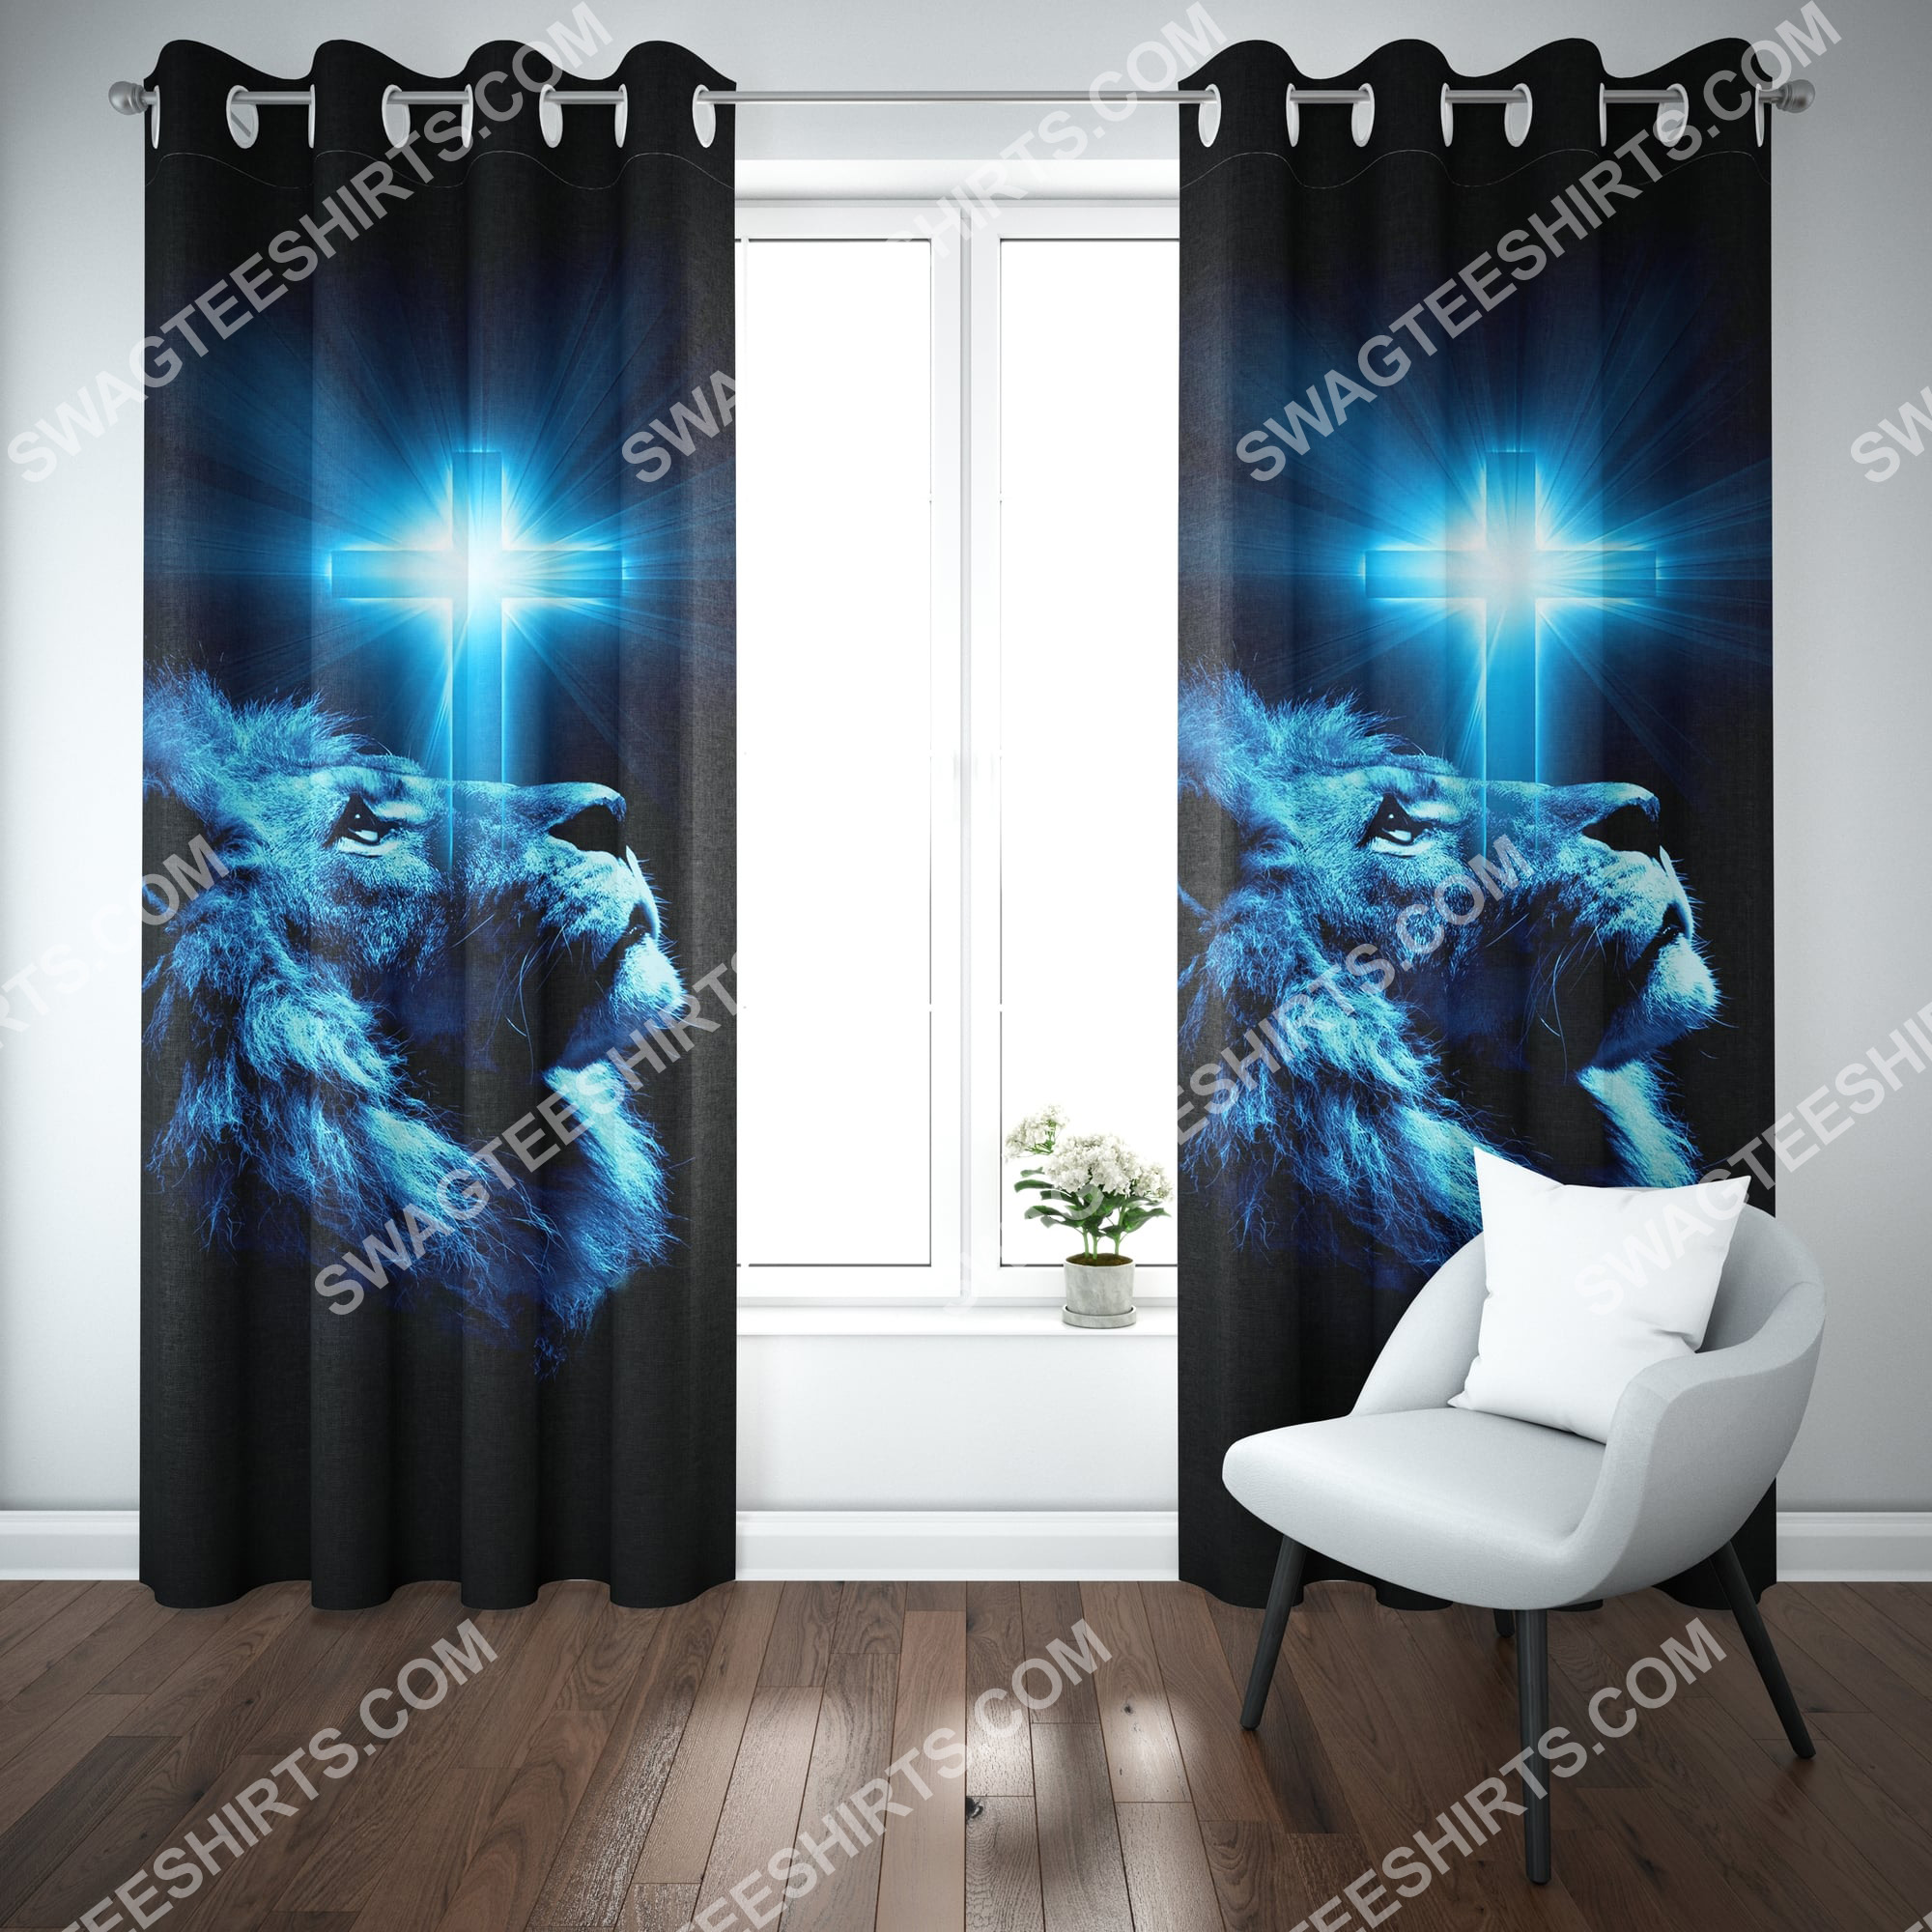 Jesus and lion all over printed window curtains 2(1)